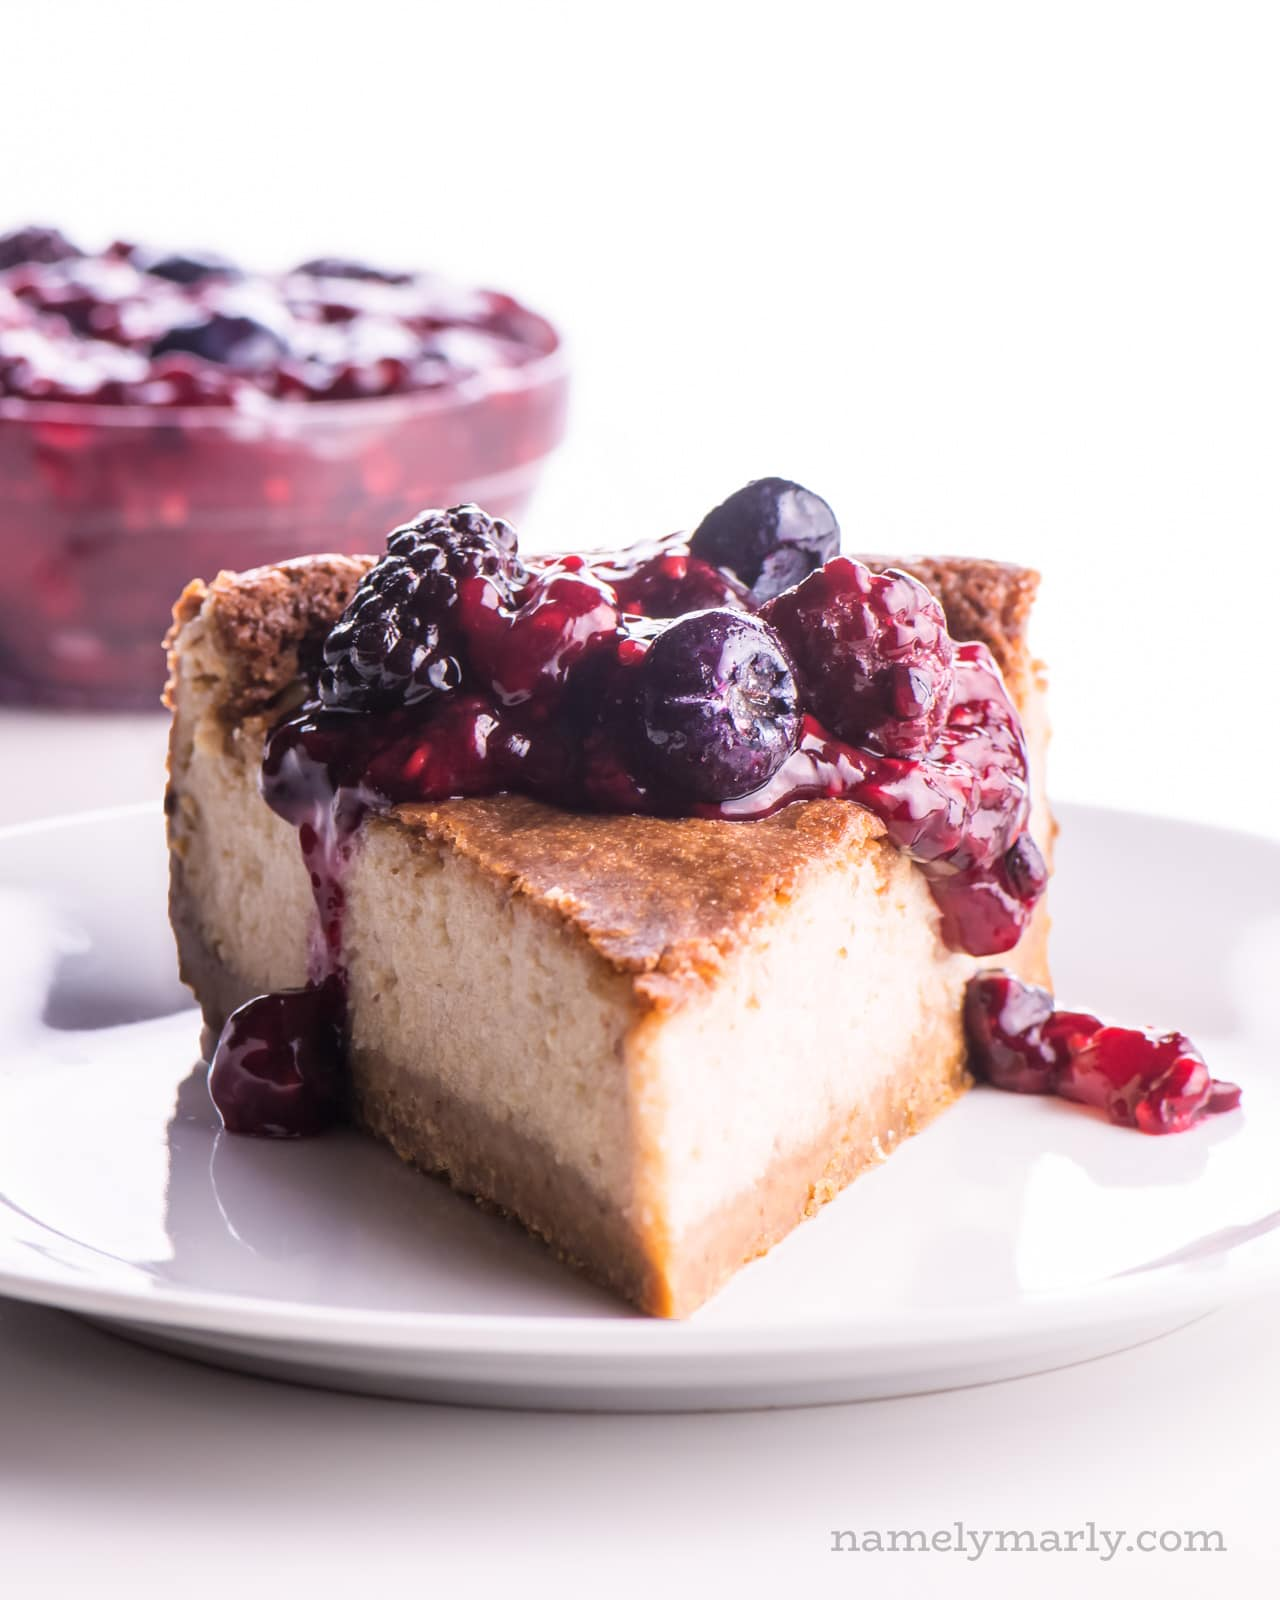 A slice of dairy free cheesecake with berry drizzle over the top and more berry topping in a bowl behind it.